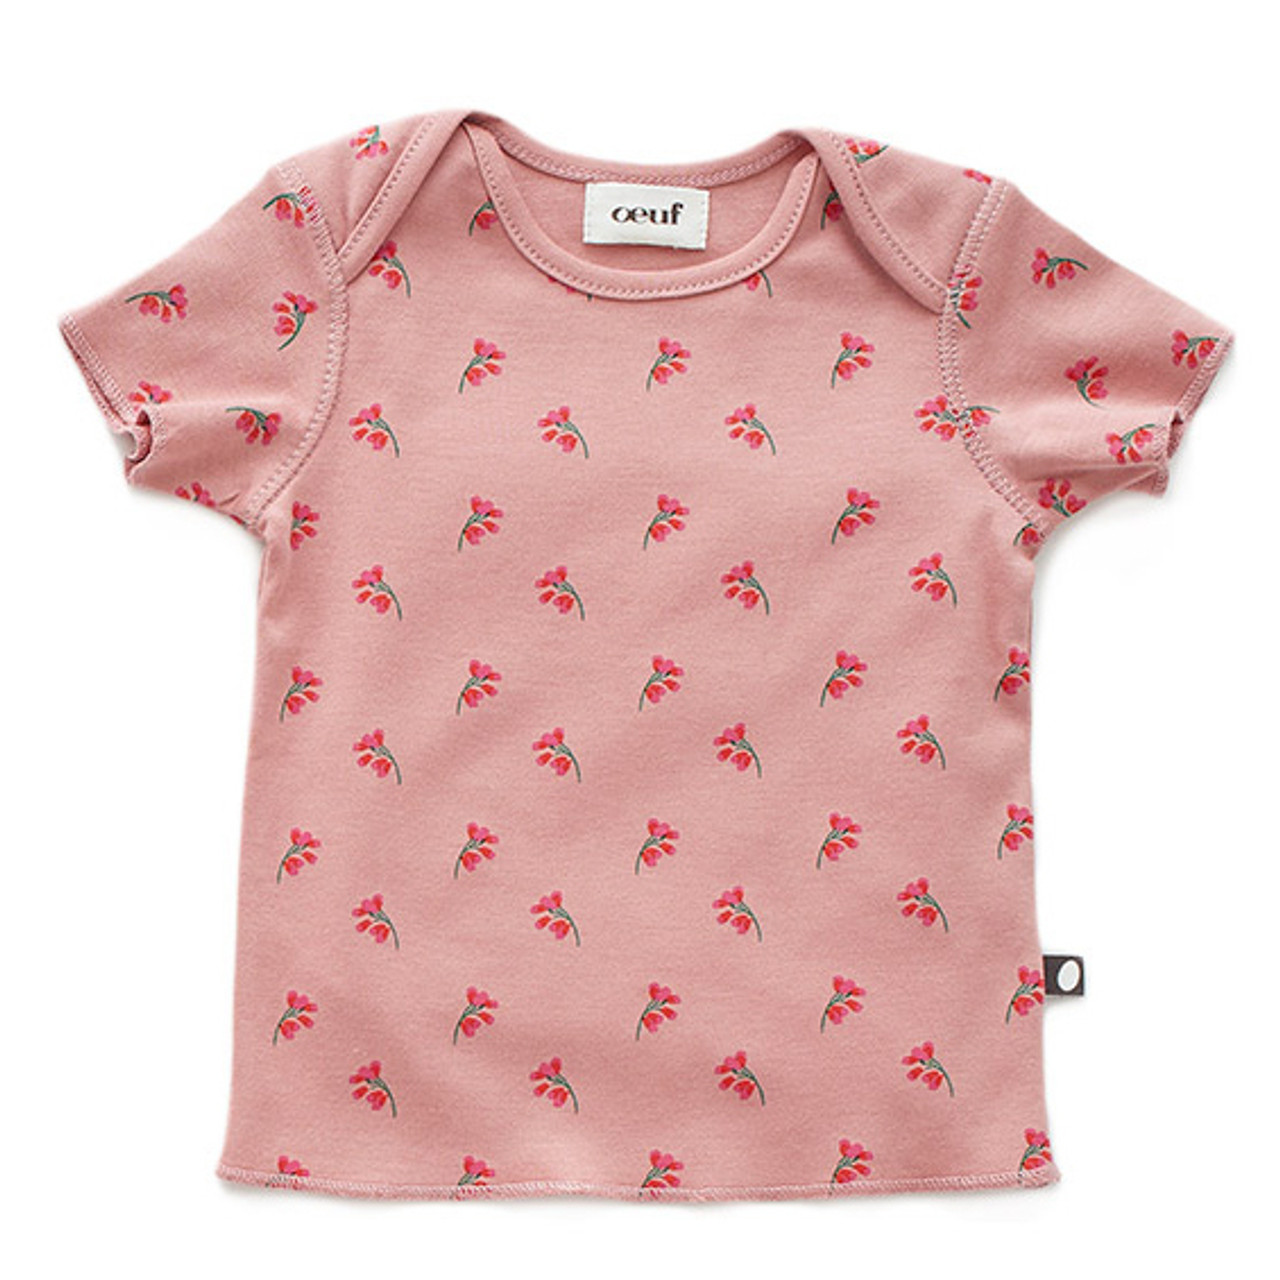 cfb13336a208 Oeuf Baby Tee, Rose Flowers - Spearmint Ventures, LLC